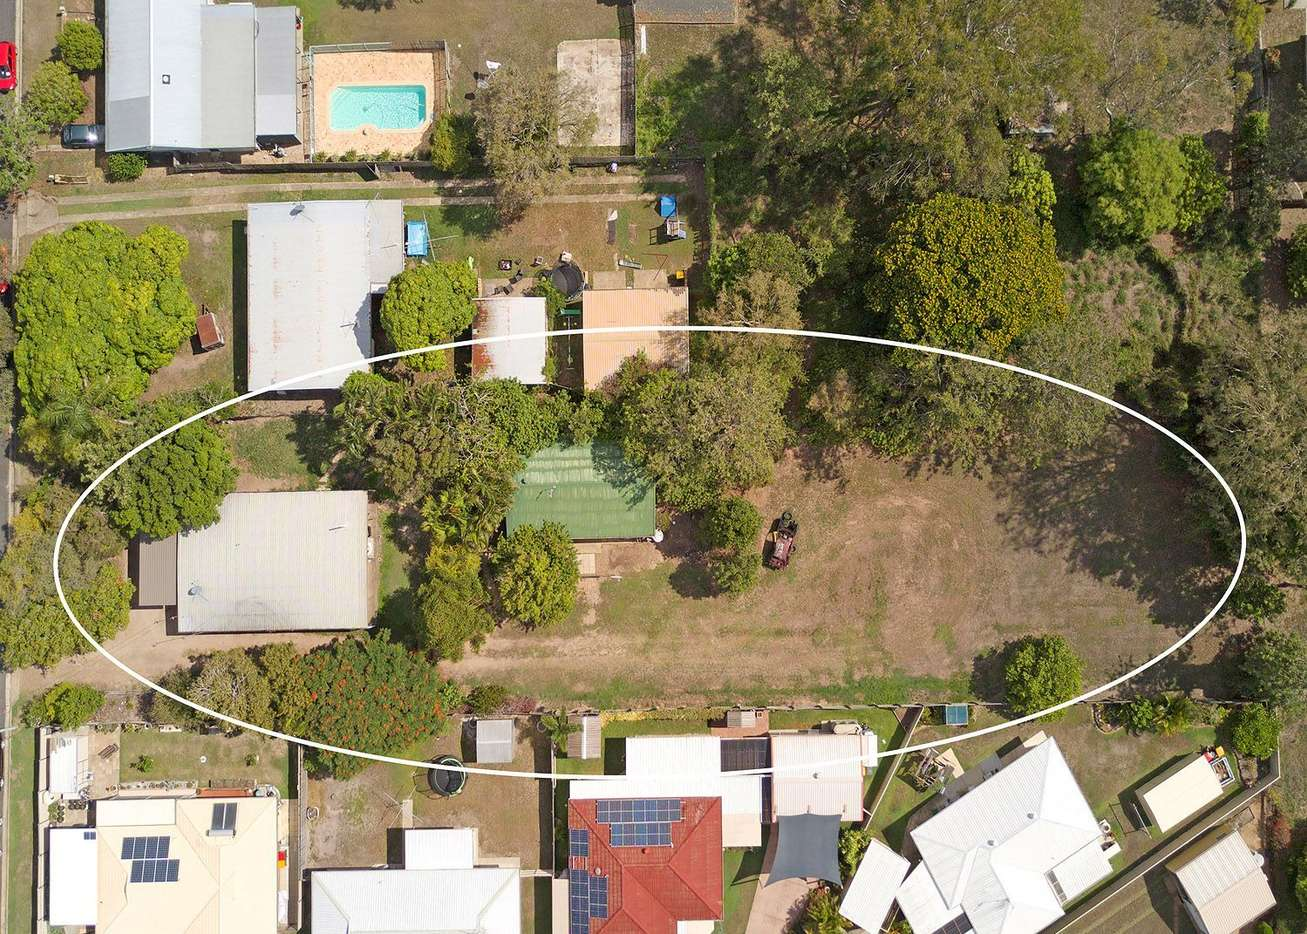 Main view of Homely house listing, 36 Neils Street, Pialba, QLD 4655